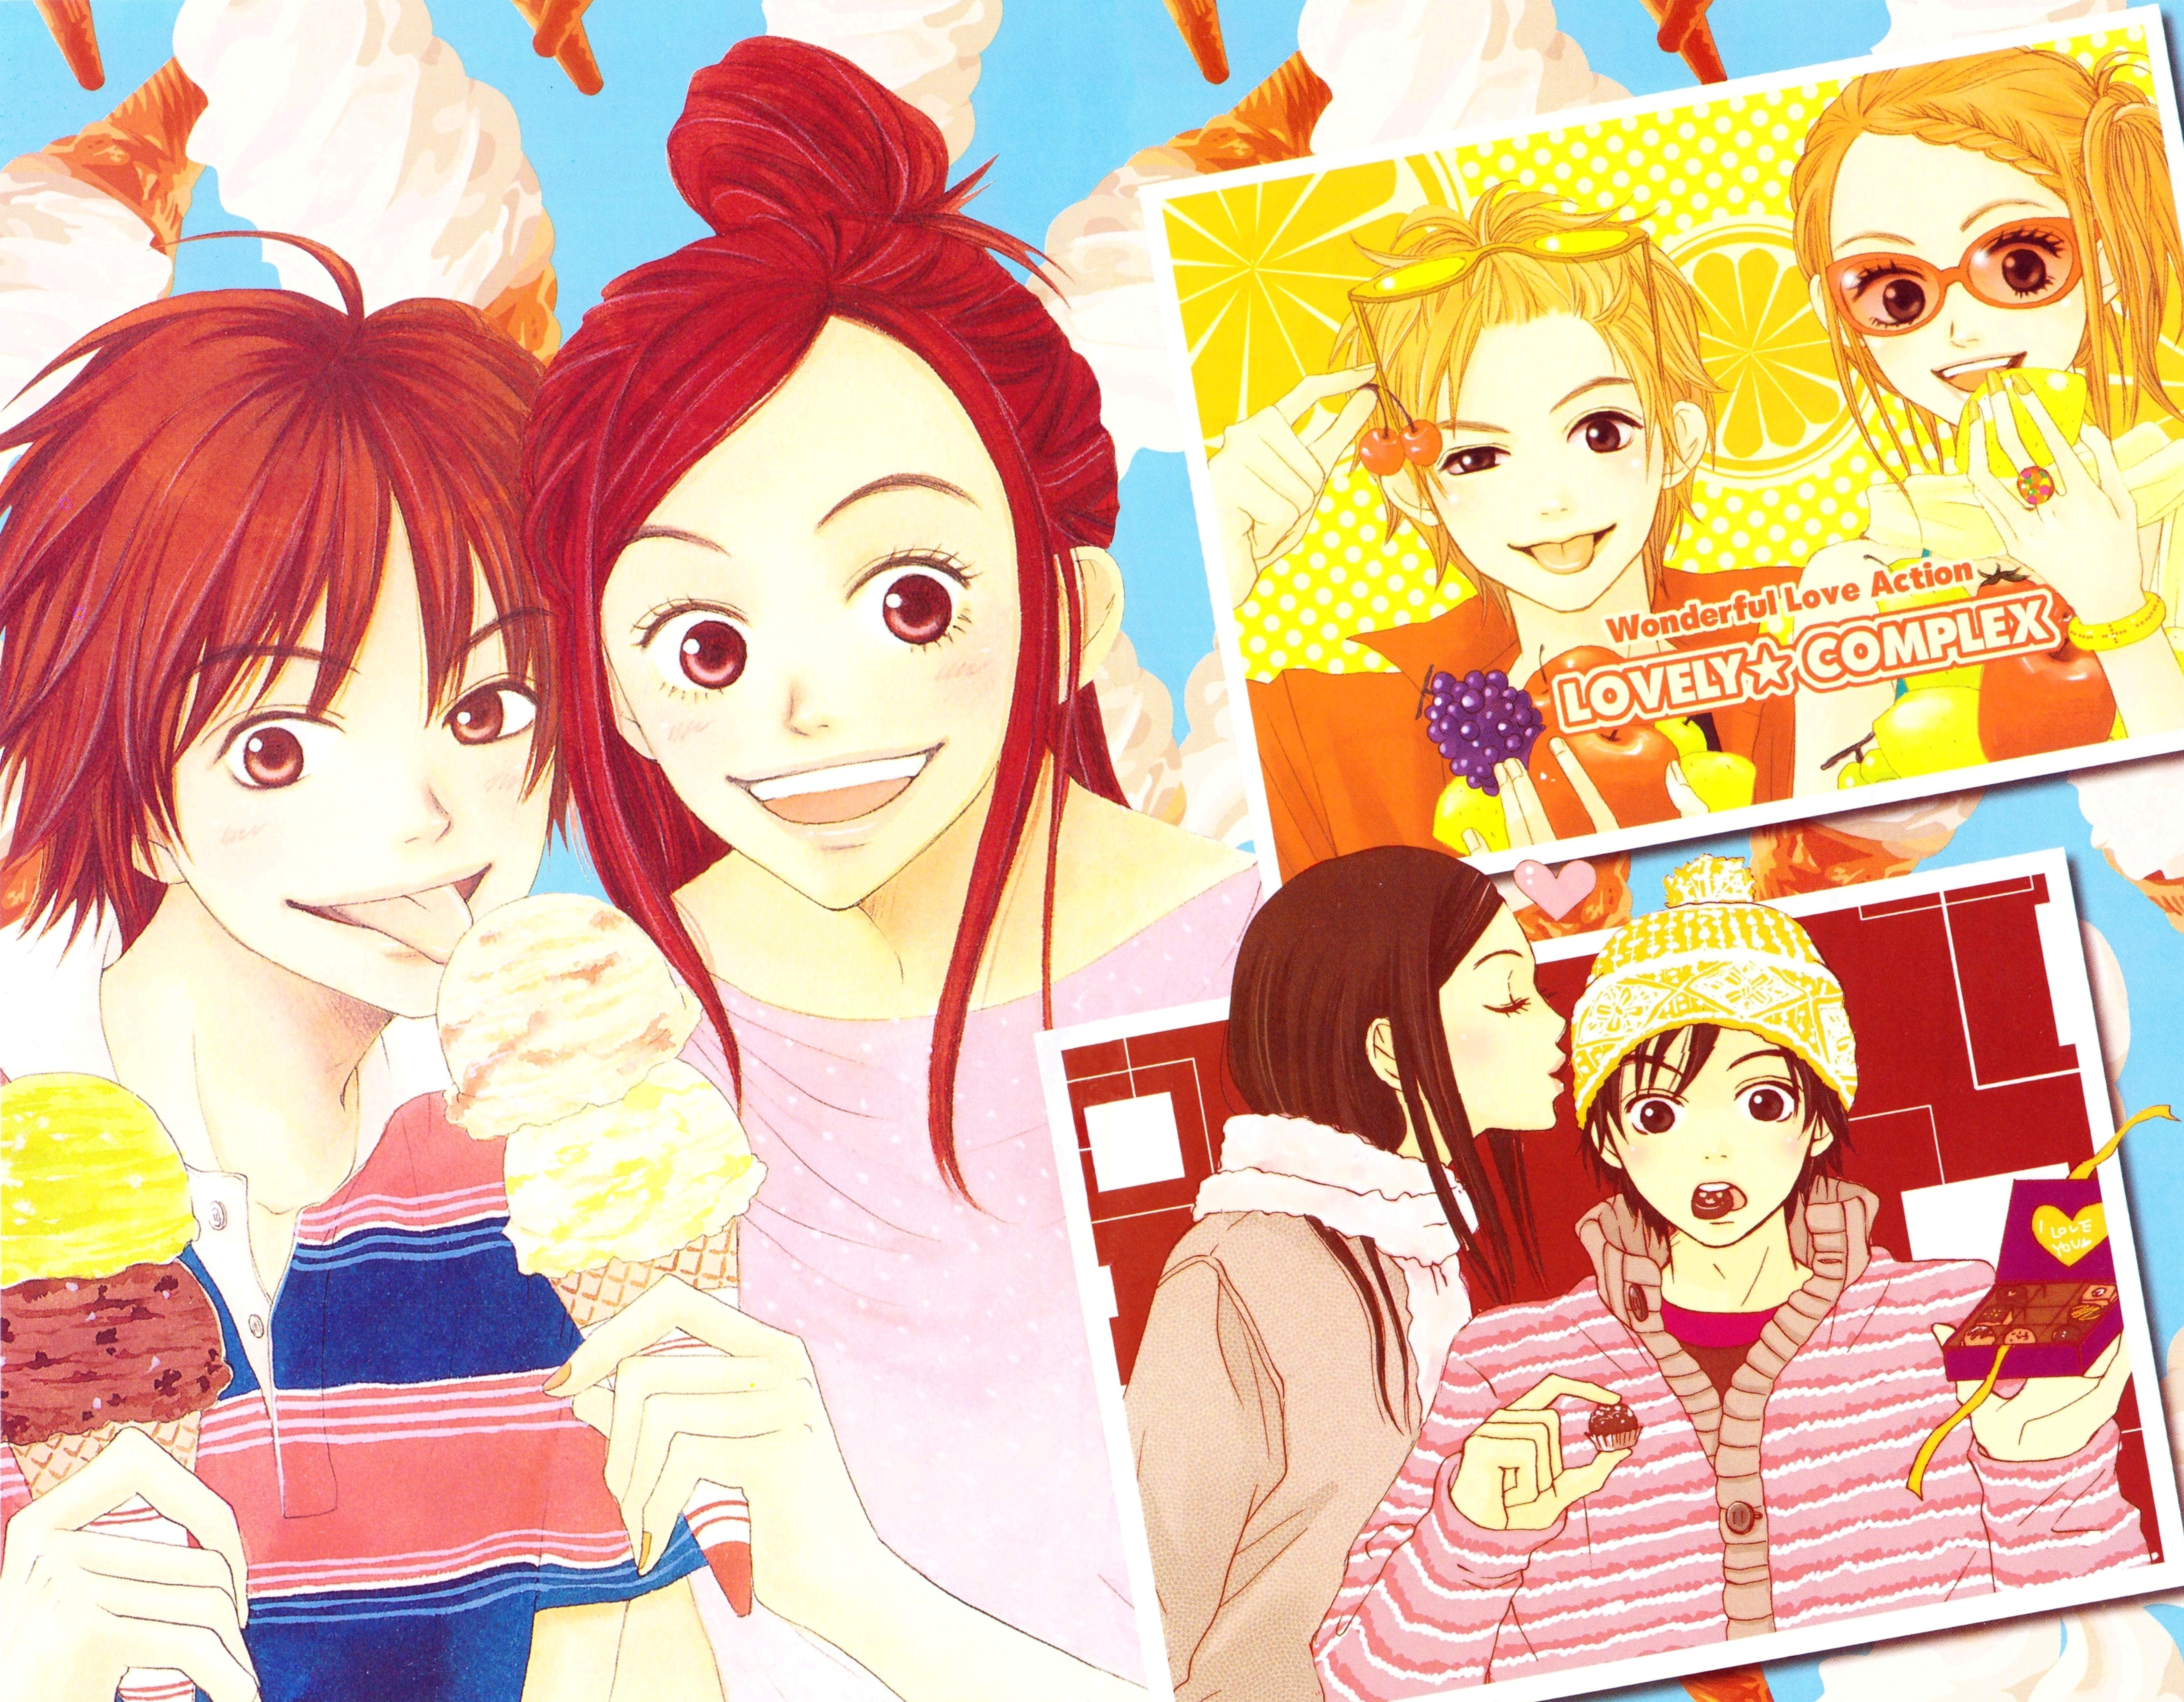 Image Result For Image Result For Lovely Complex Wallpaper Anime Anime